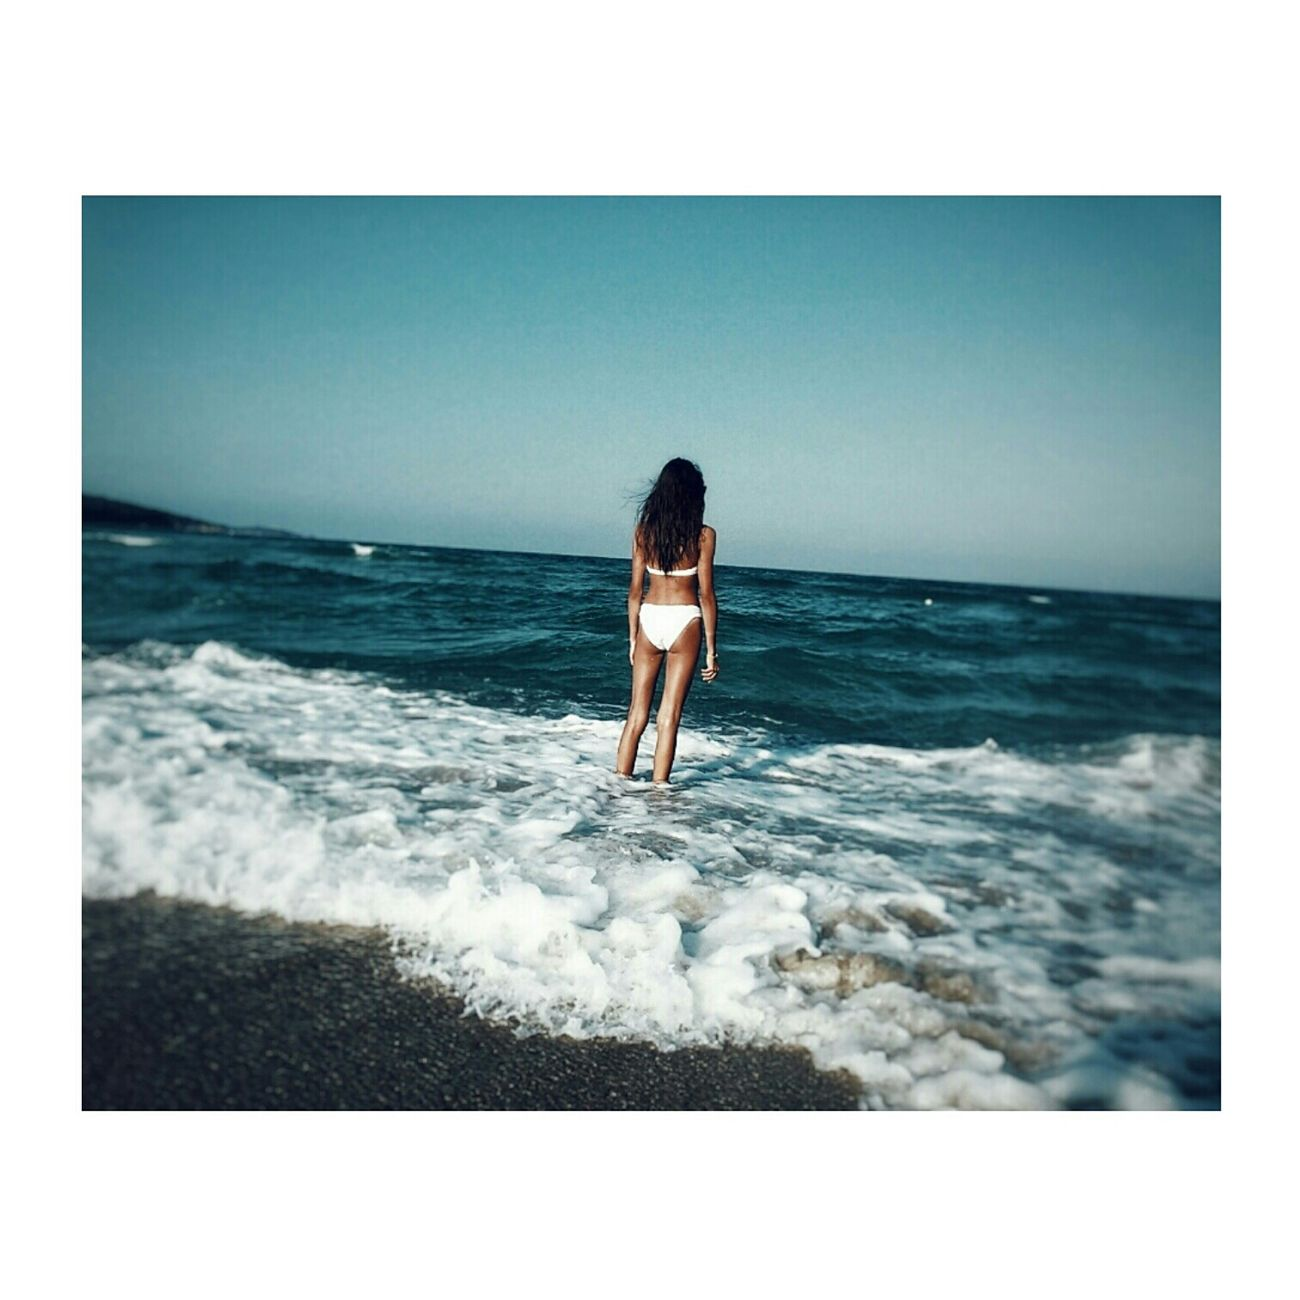 Bulgaria Enjoyingsummer Sea Blacksea Beach Sand Blue Bluesky Noclouds Girl Picturing Individuality